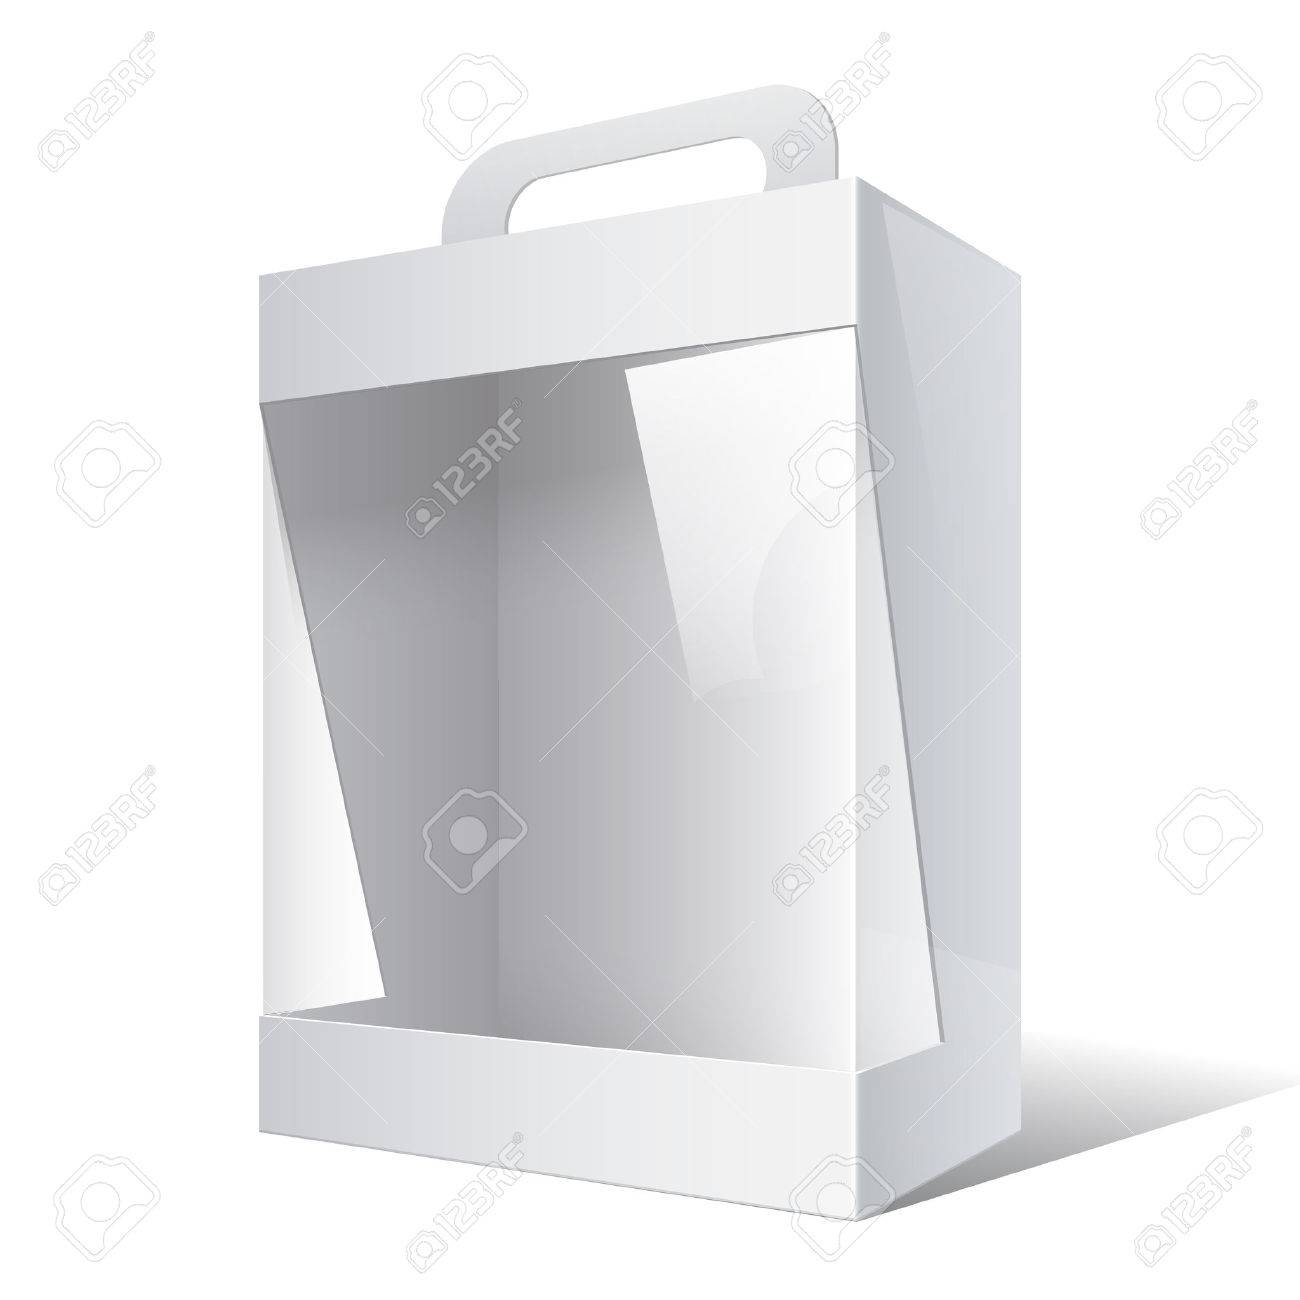 Light Realistic Package Cardboard Box with a handle and a transparent